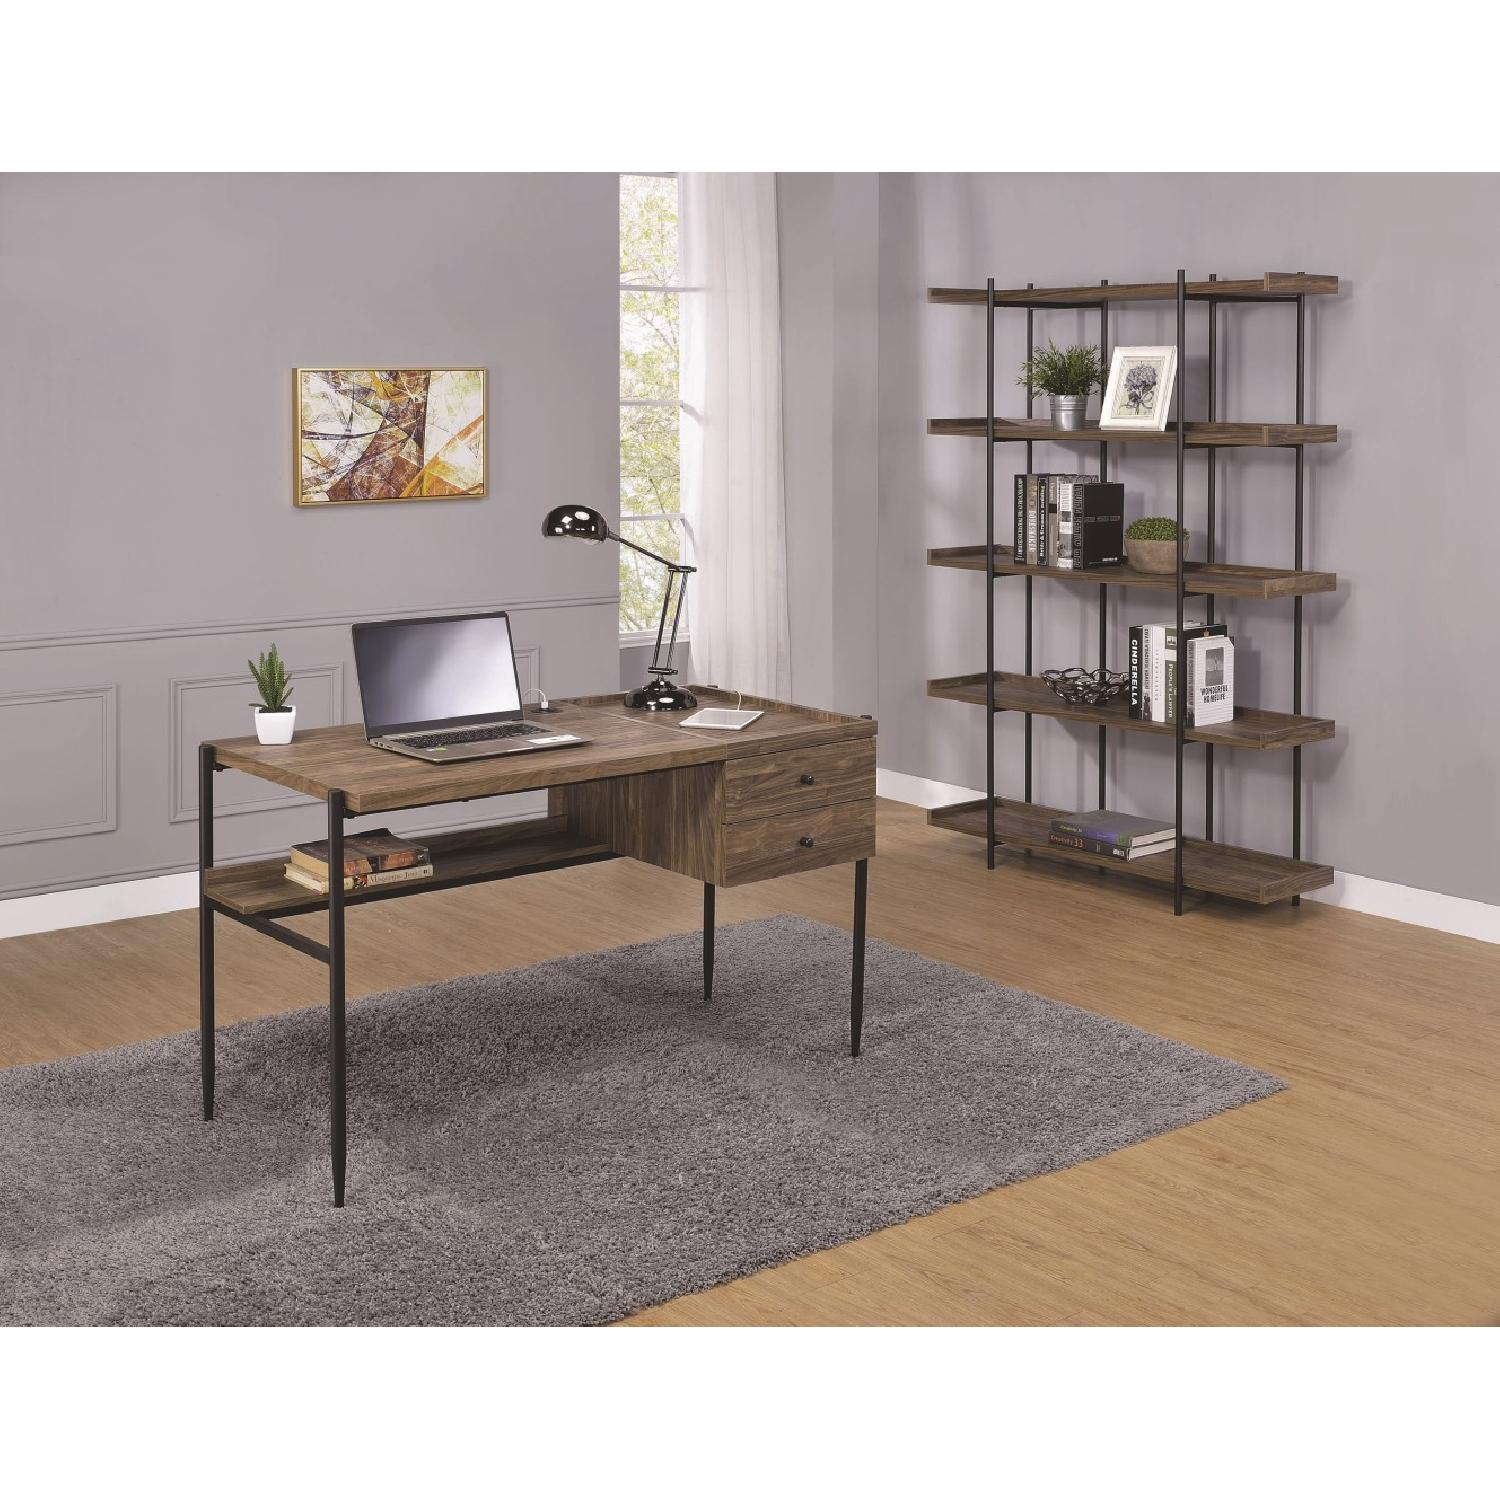 Industrial Style 5-Shelves Bookcase in Aged Walnut Finish - image-4